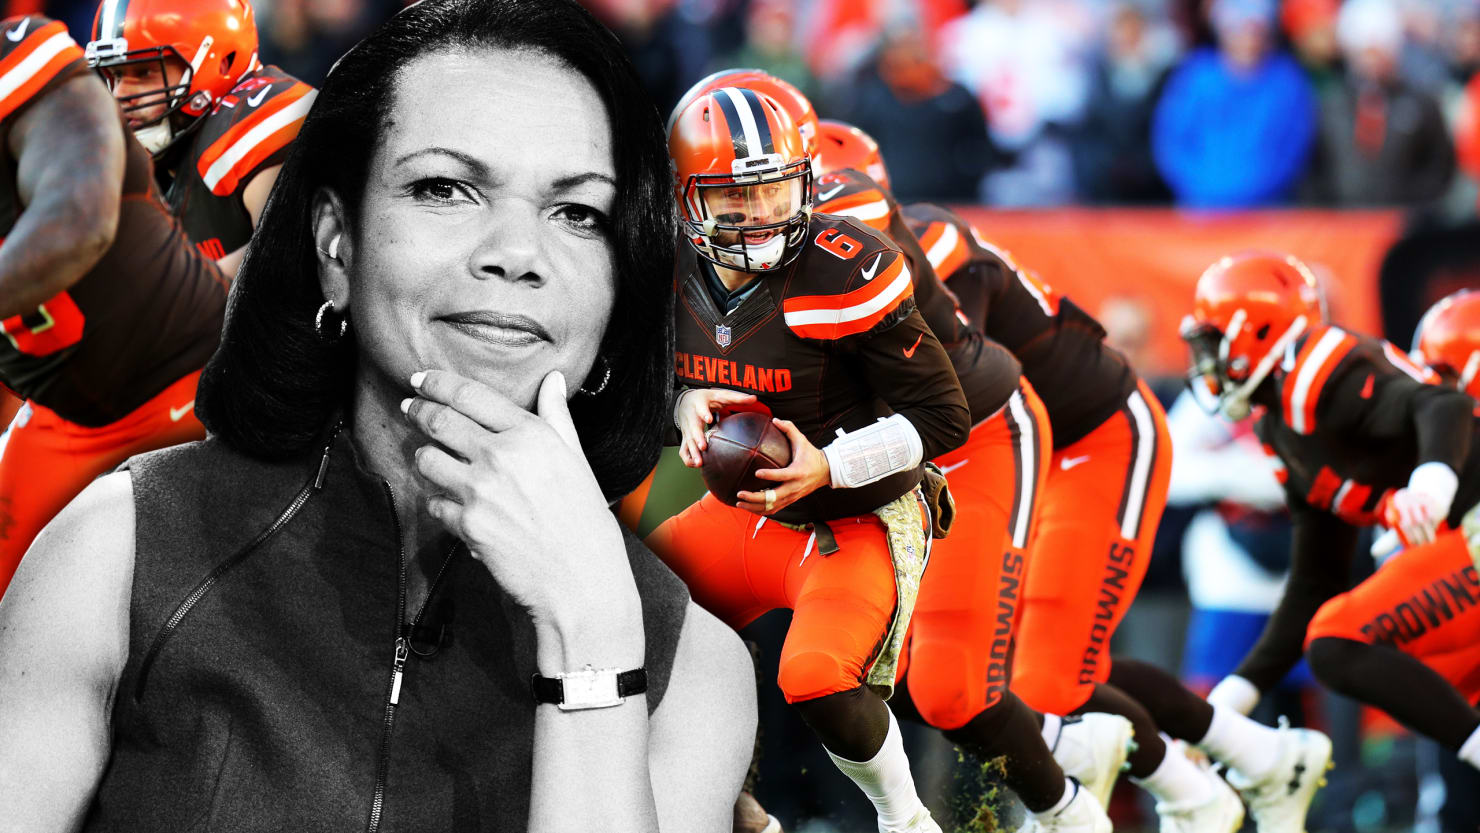 Why Condoleezza Rice Should Coach the NFL's Cleveland Browns